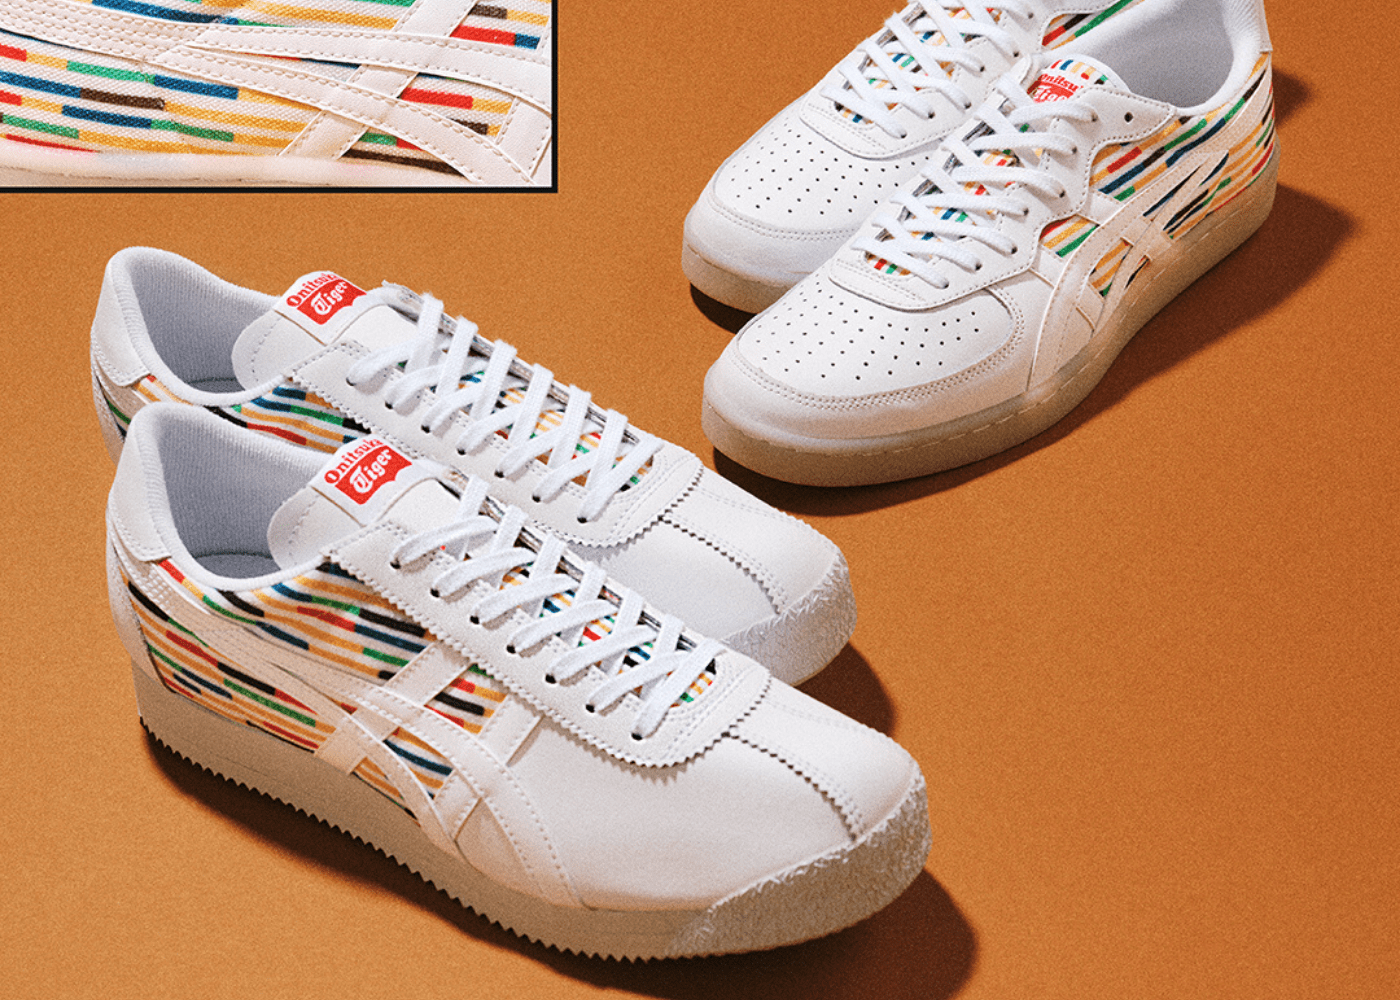 Upgrade your white sneakers with cool kicks from Onitsuka Tiger